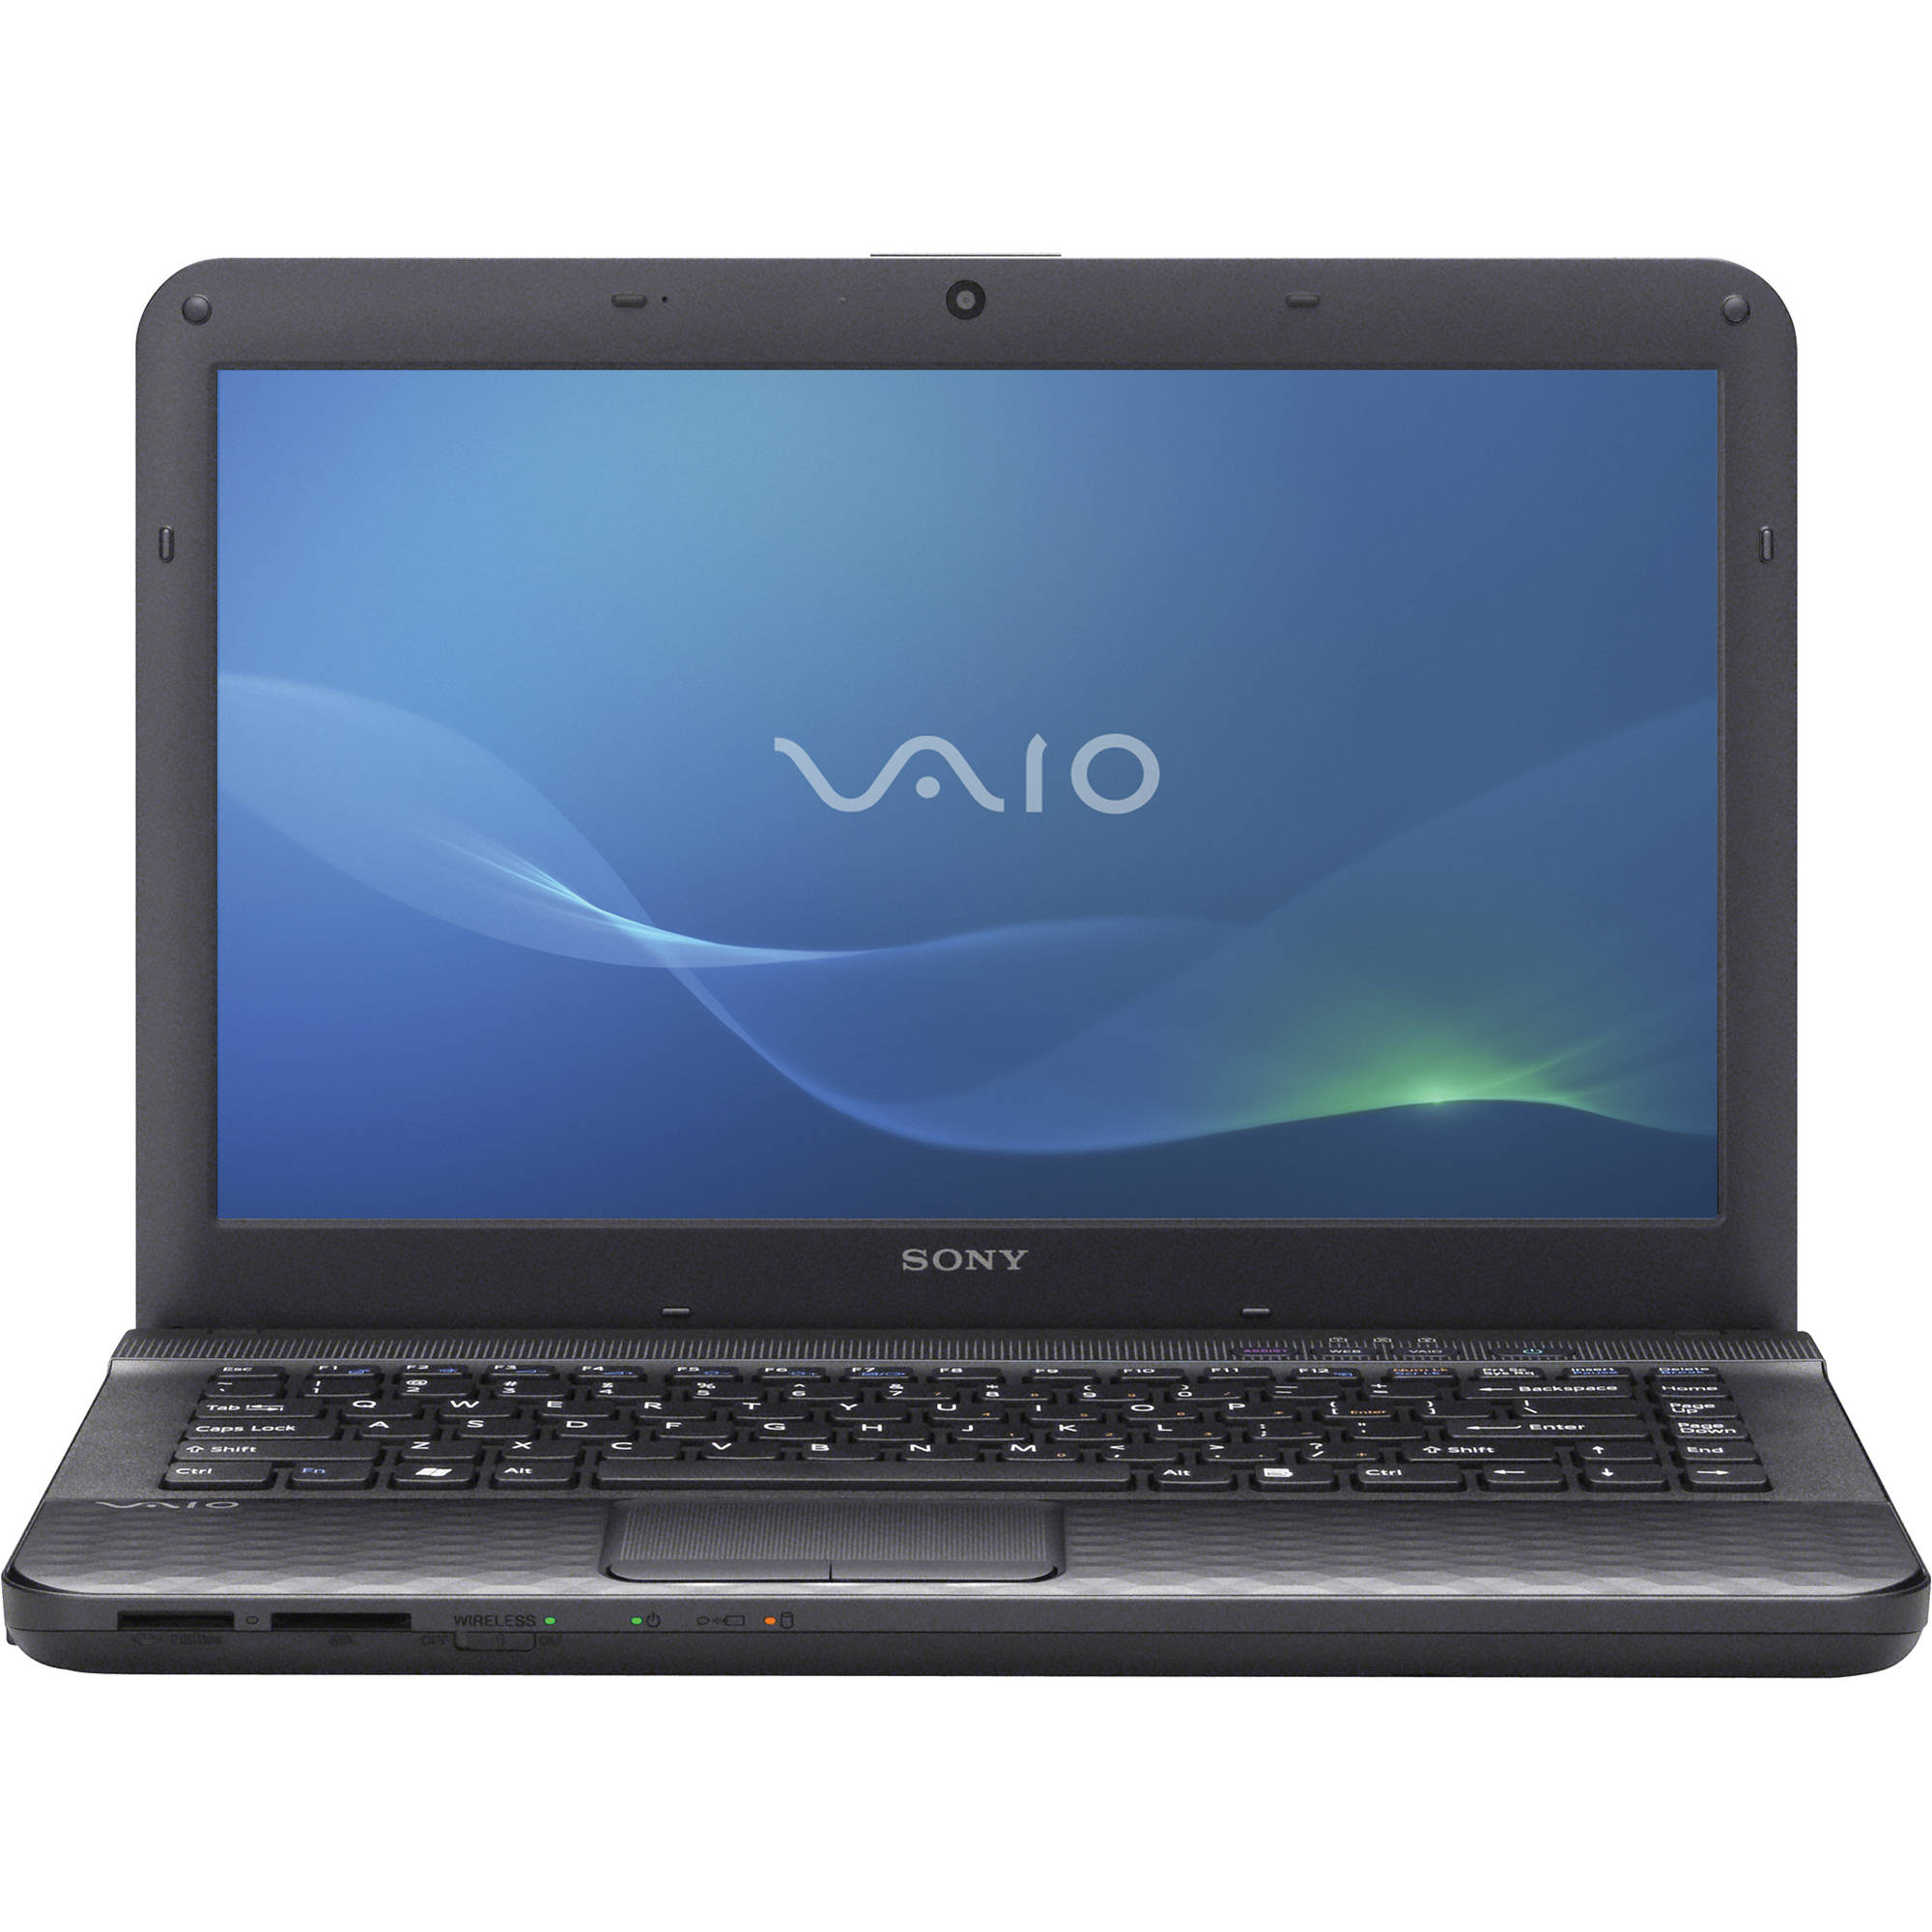 Driver for Sony Vaio VPCEG18FX/B Intel WiDi